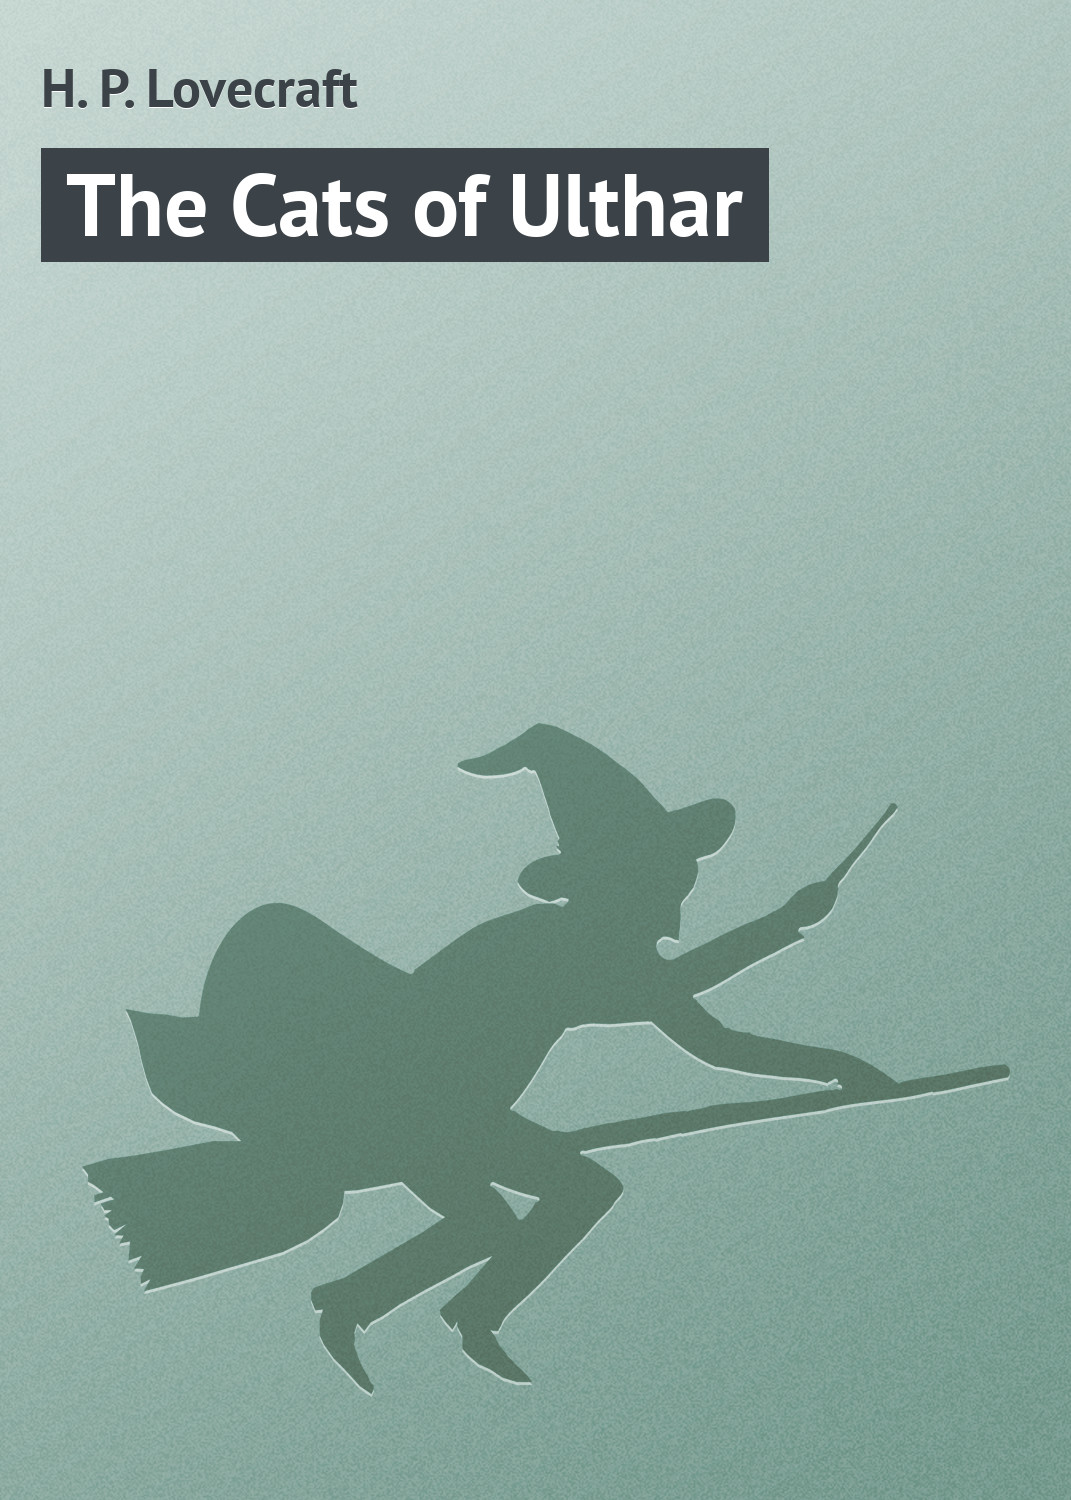 Howard Phillips Lovecraft The Cats of Ulthar goran therborn the killing fields of inequality